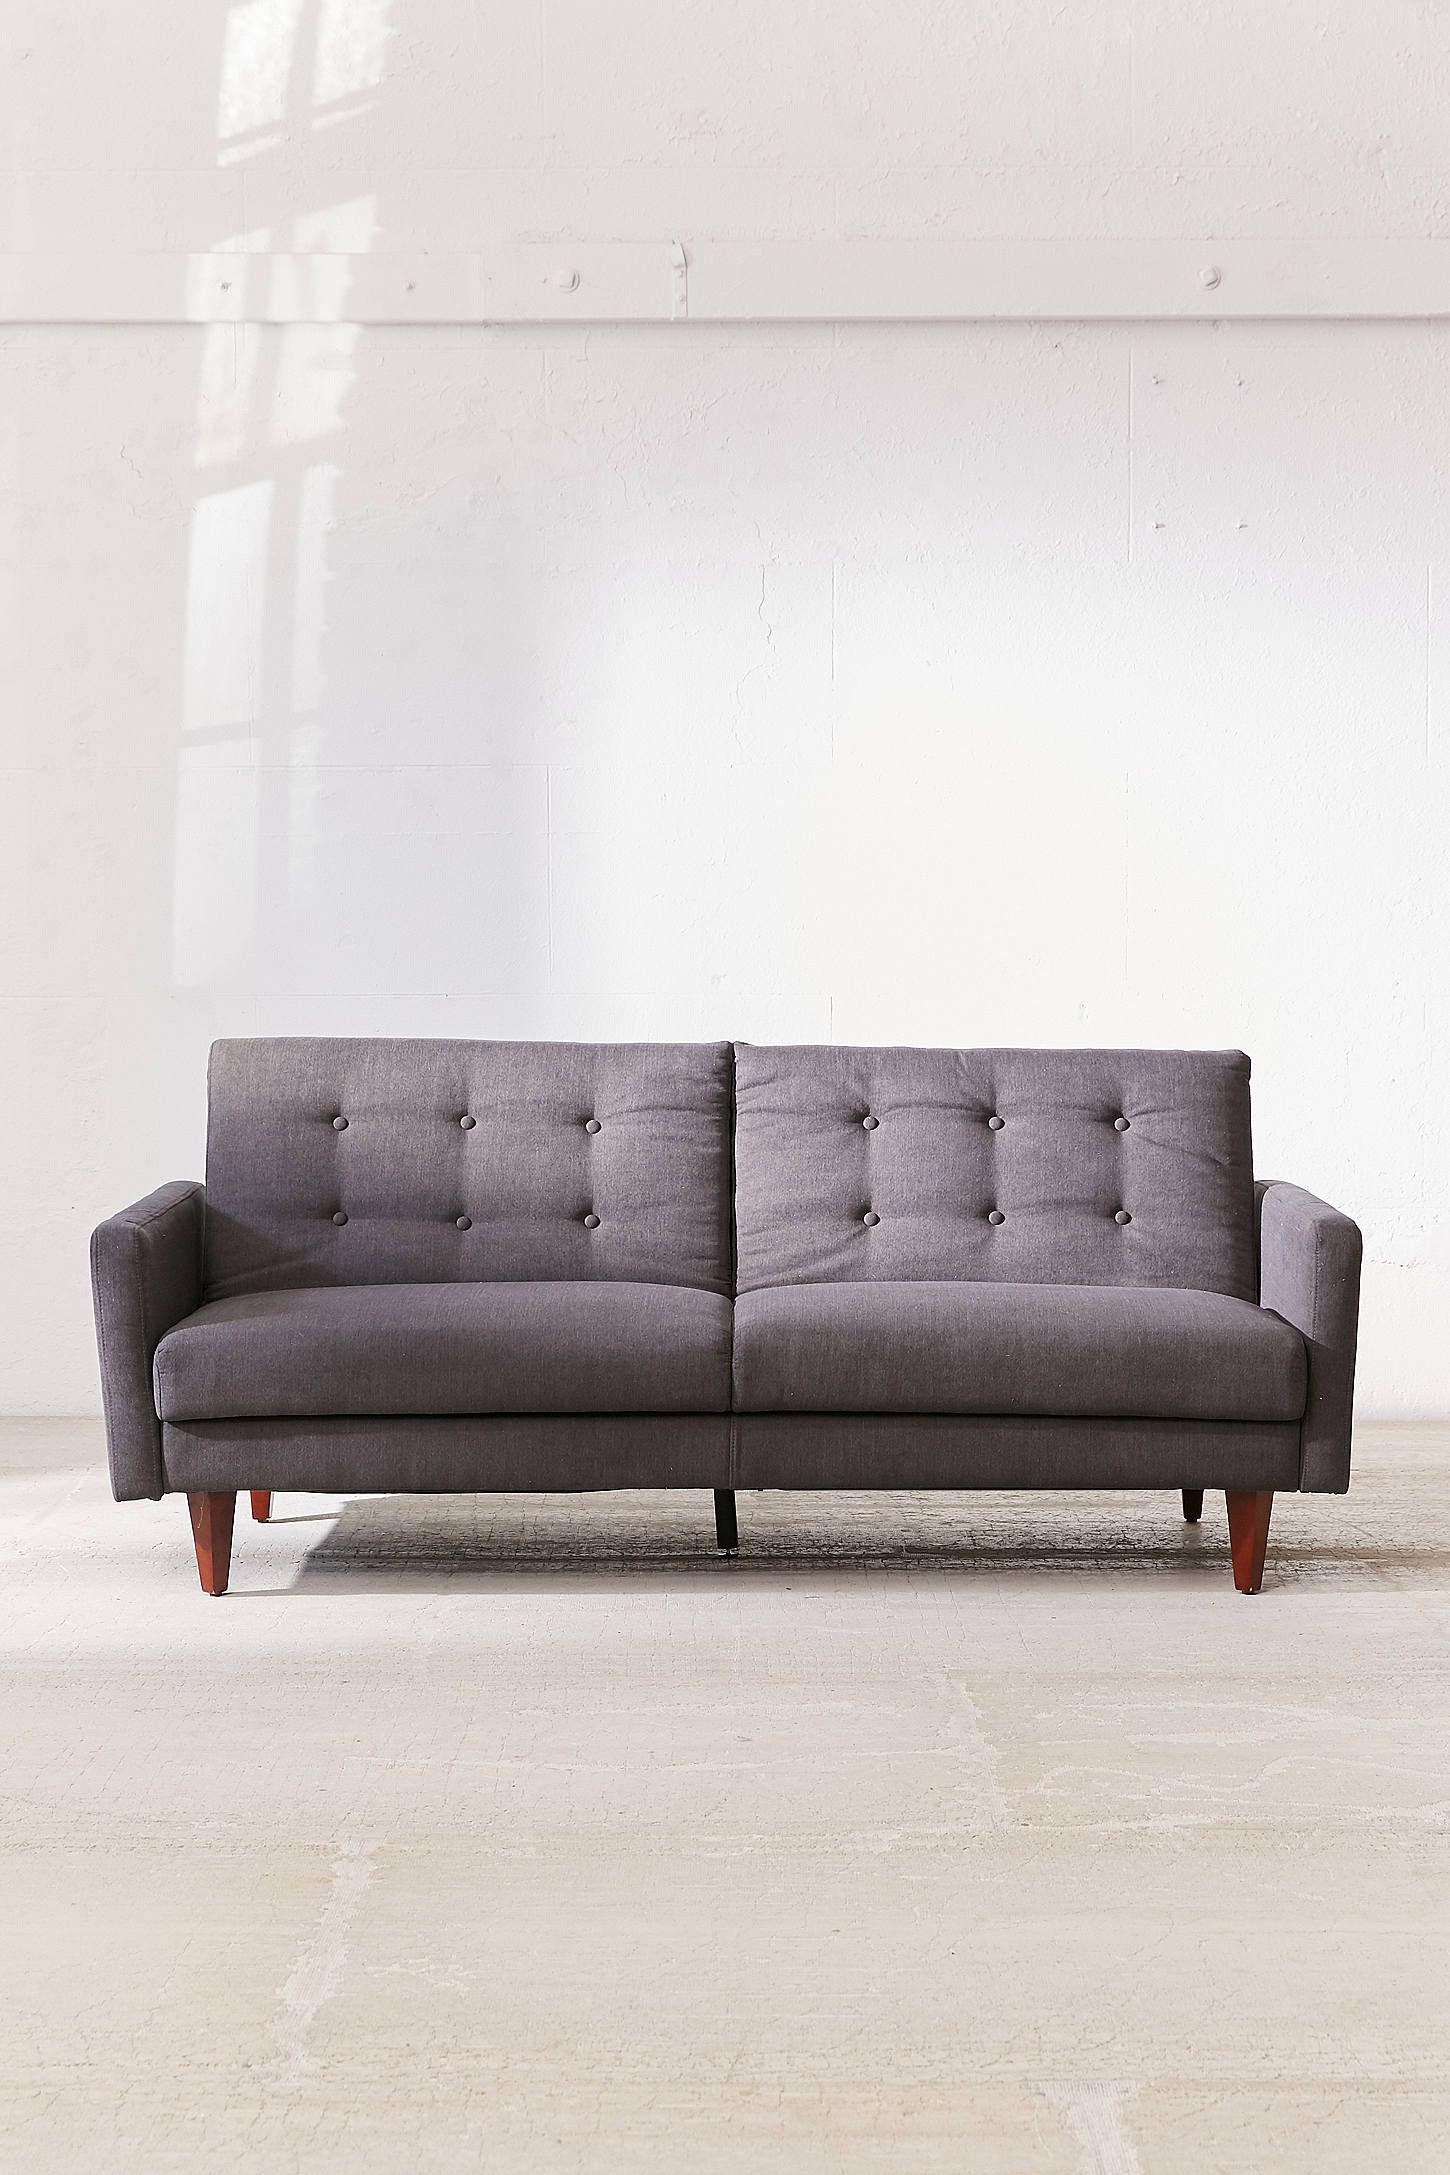 outfitters at urban on sofas outfitter dylan sofa sale strategist couch